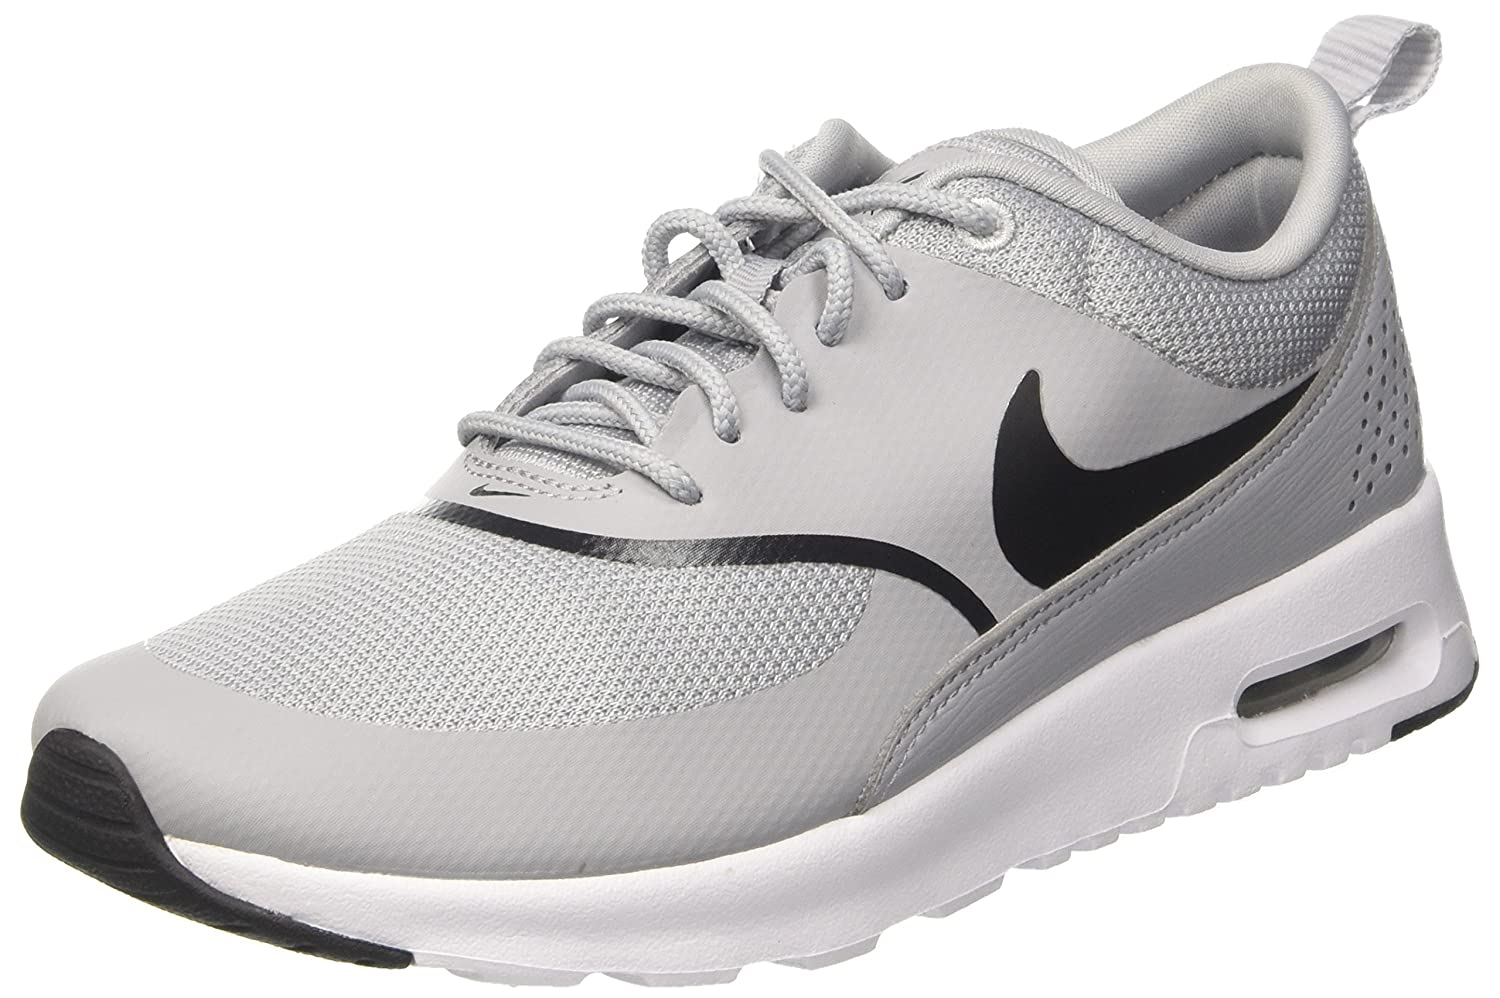 NIKE Air Grey/Black Max Thea, 030) Max Baskets Femme Gris (Wolf Grey/Black 030) 4f6c81c - conorscully.space